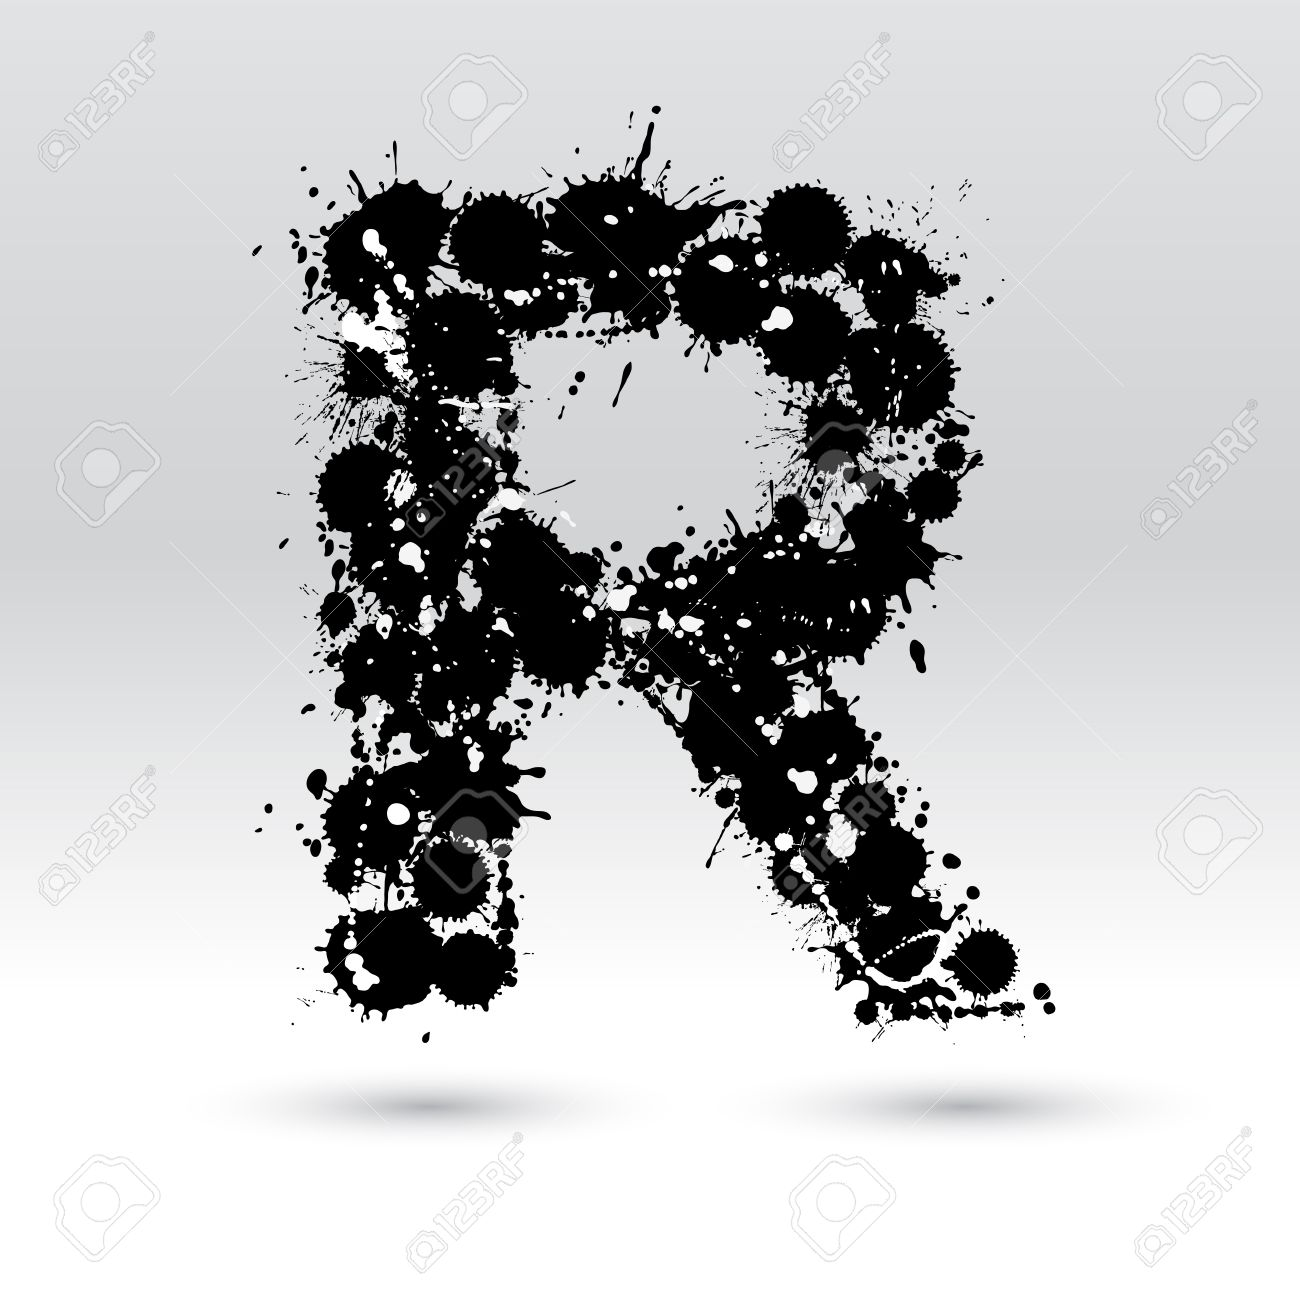 letter r formed by black and white ink blots royalty free cliparts